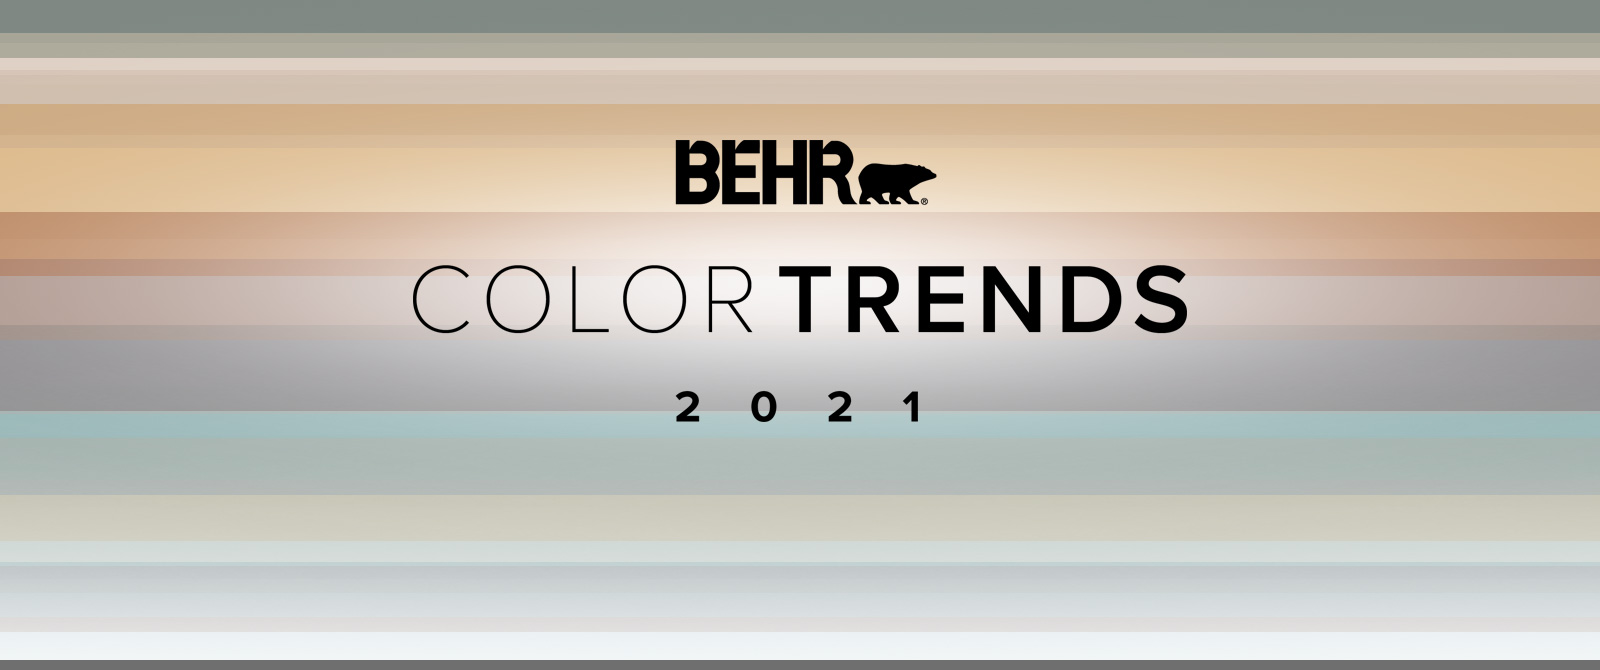 Image with the words BEHR Color Trends 2021 with the color palette in the background.